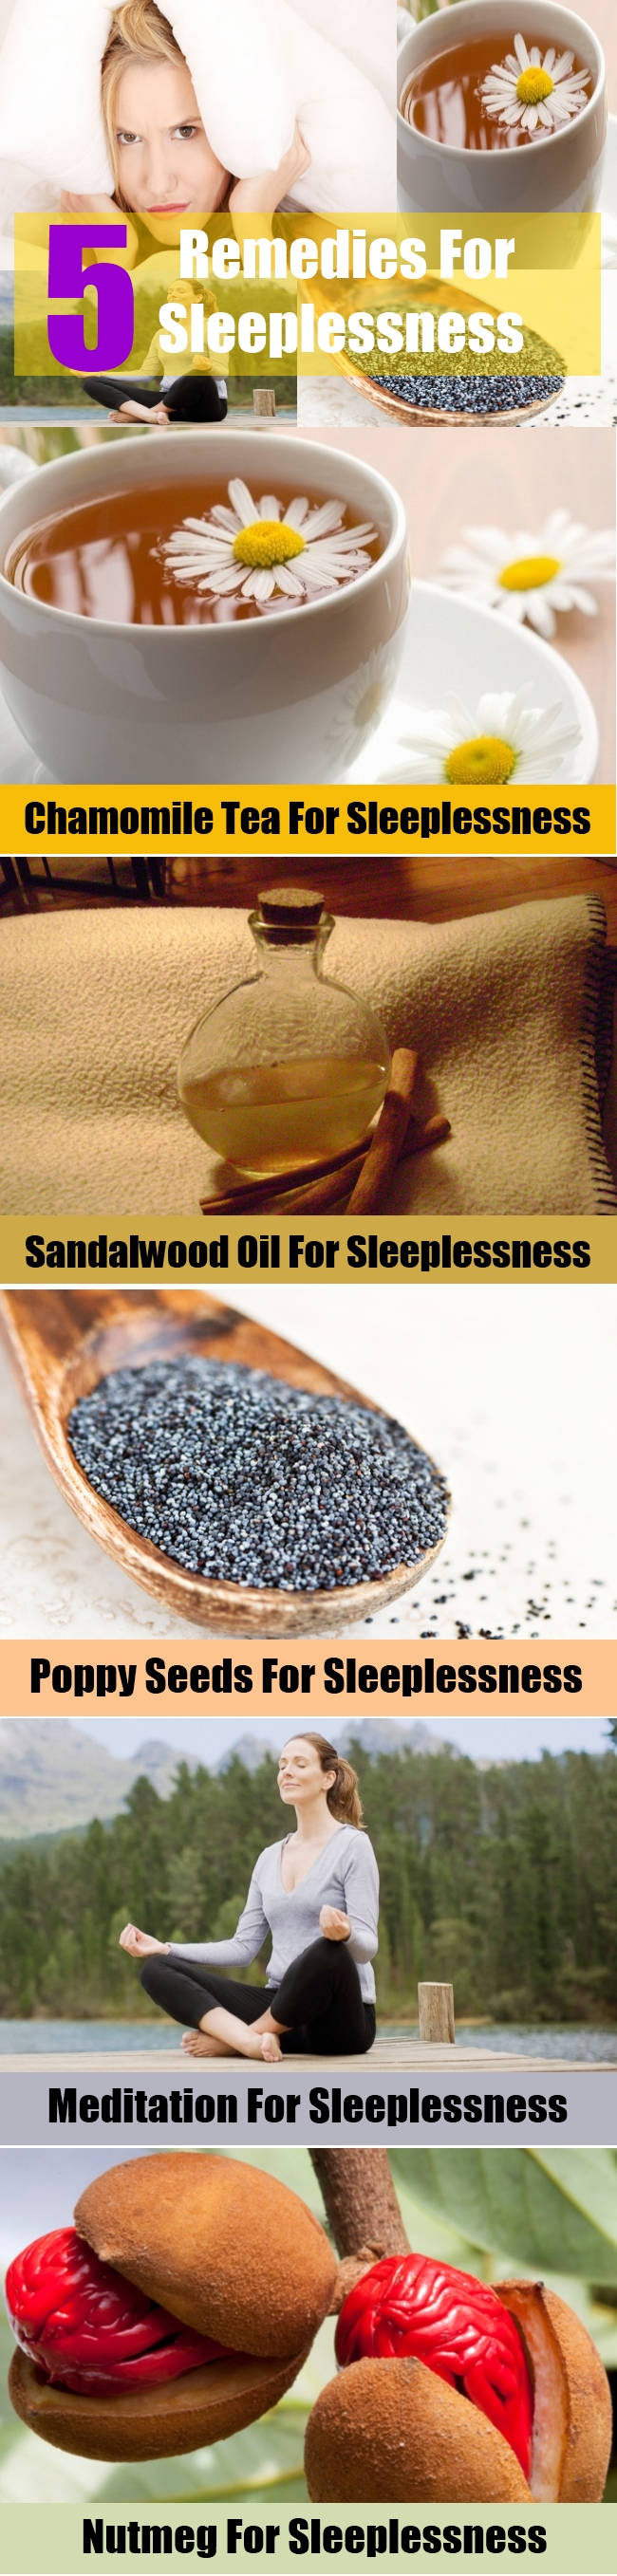 Remedies For Sleeplessness